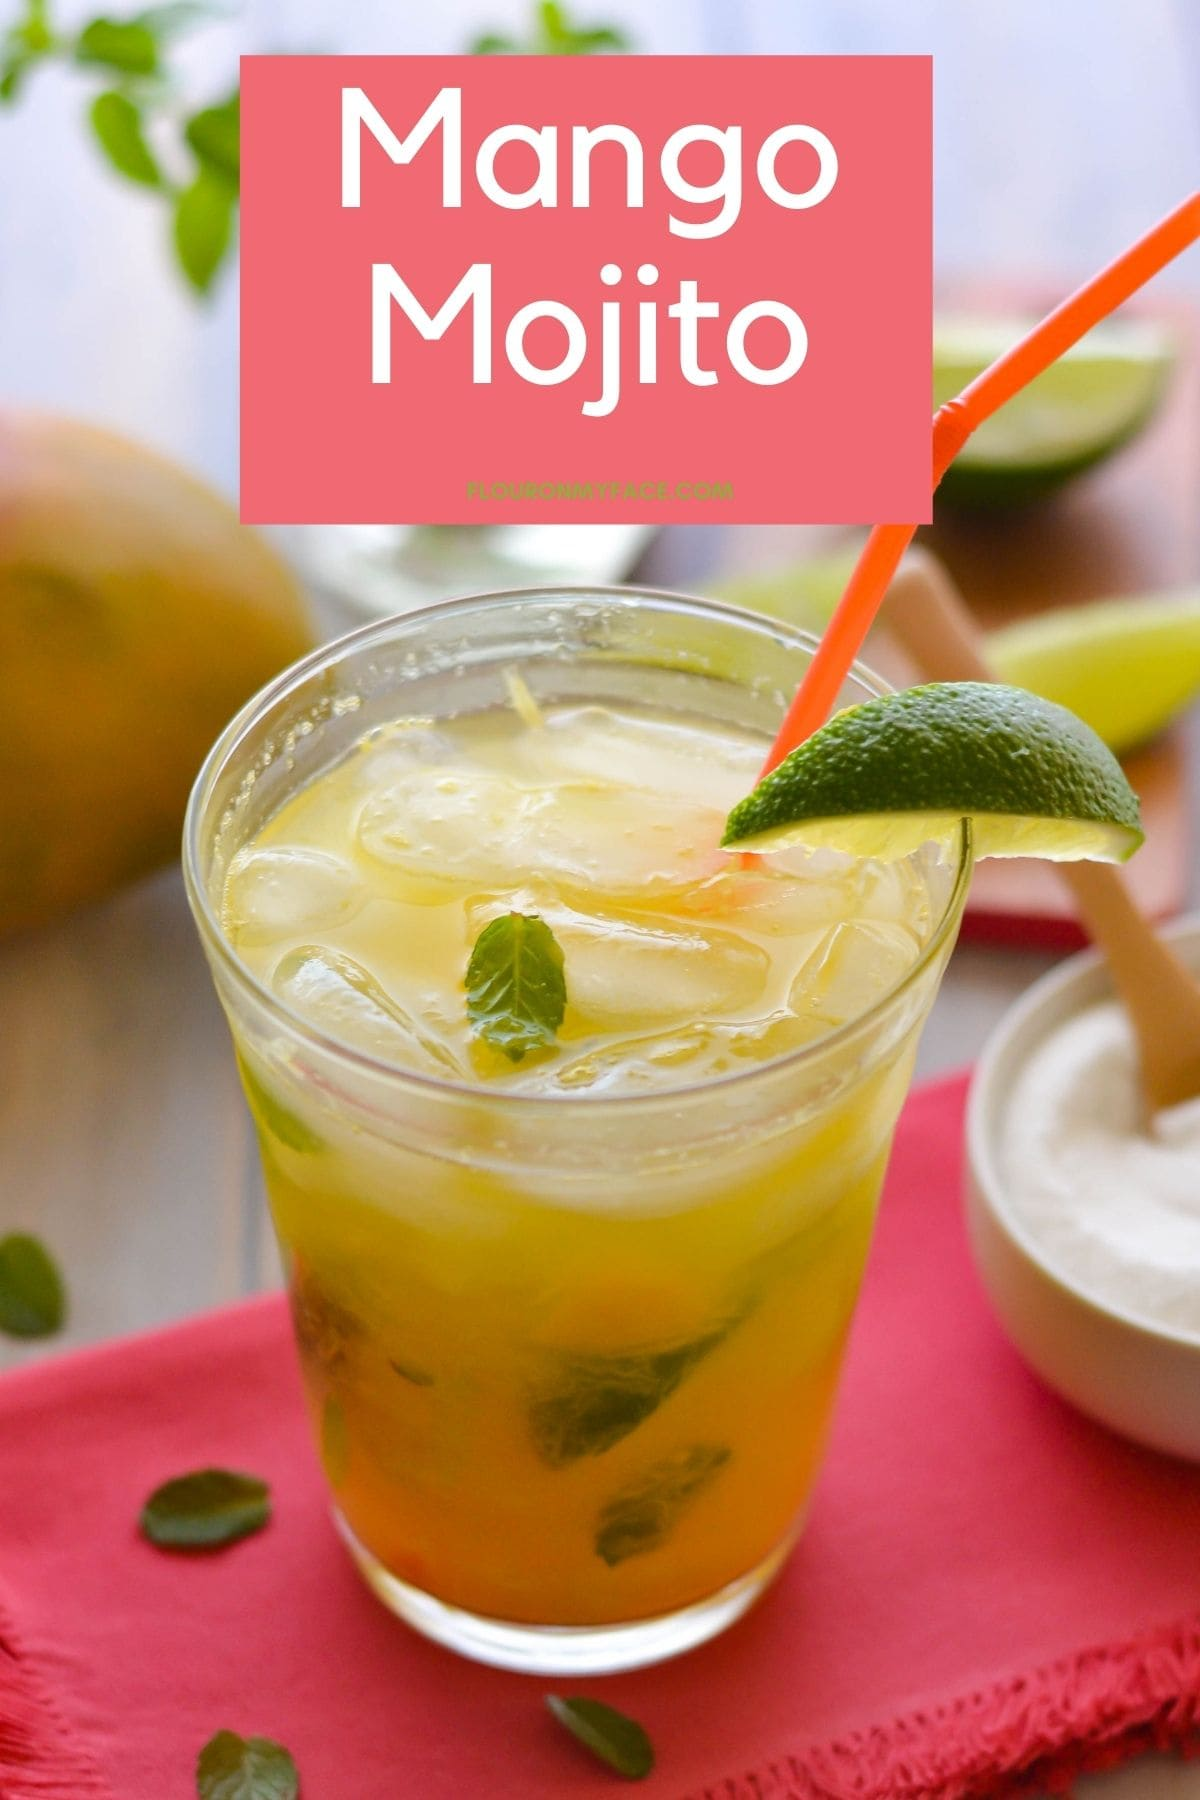 A tall glass filled with Mango Mojito garnished with lime on a cloth napkin.